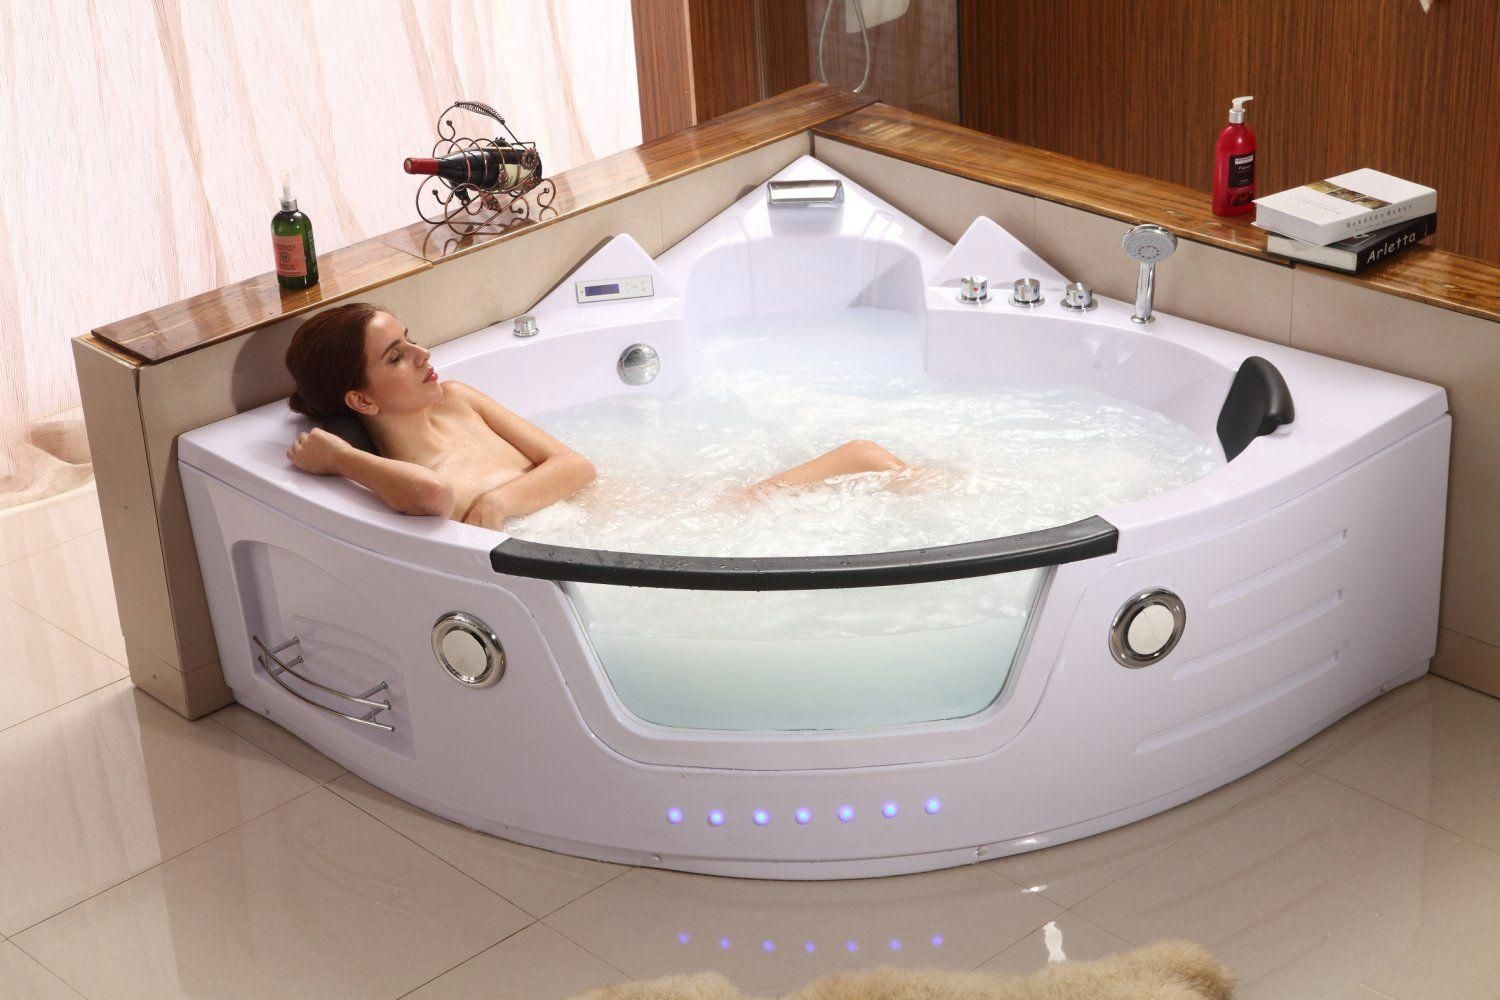 2 Person Hydrotherapy Computerized Massage Indoor Whirlpool Jetted Bathtub Hot Tub 050a White Dream Bathroom Bathtub Jetted Bath Tubs Jacuzzi Hot Tub